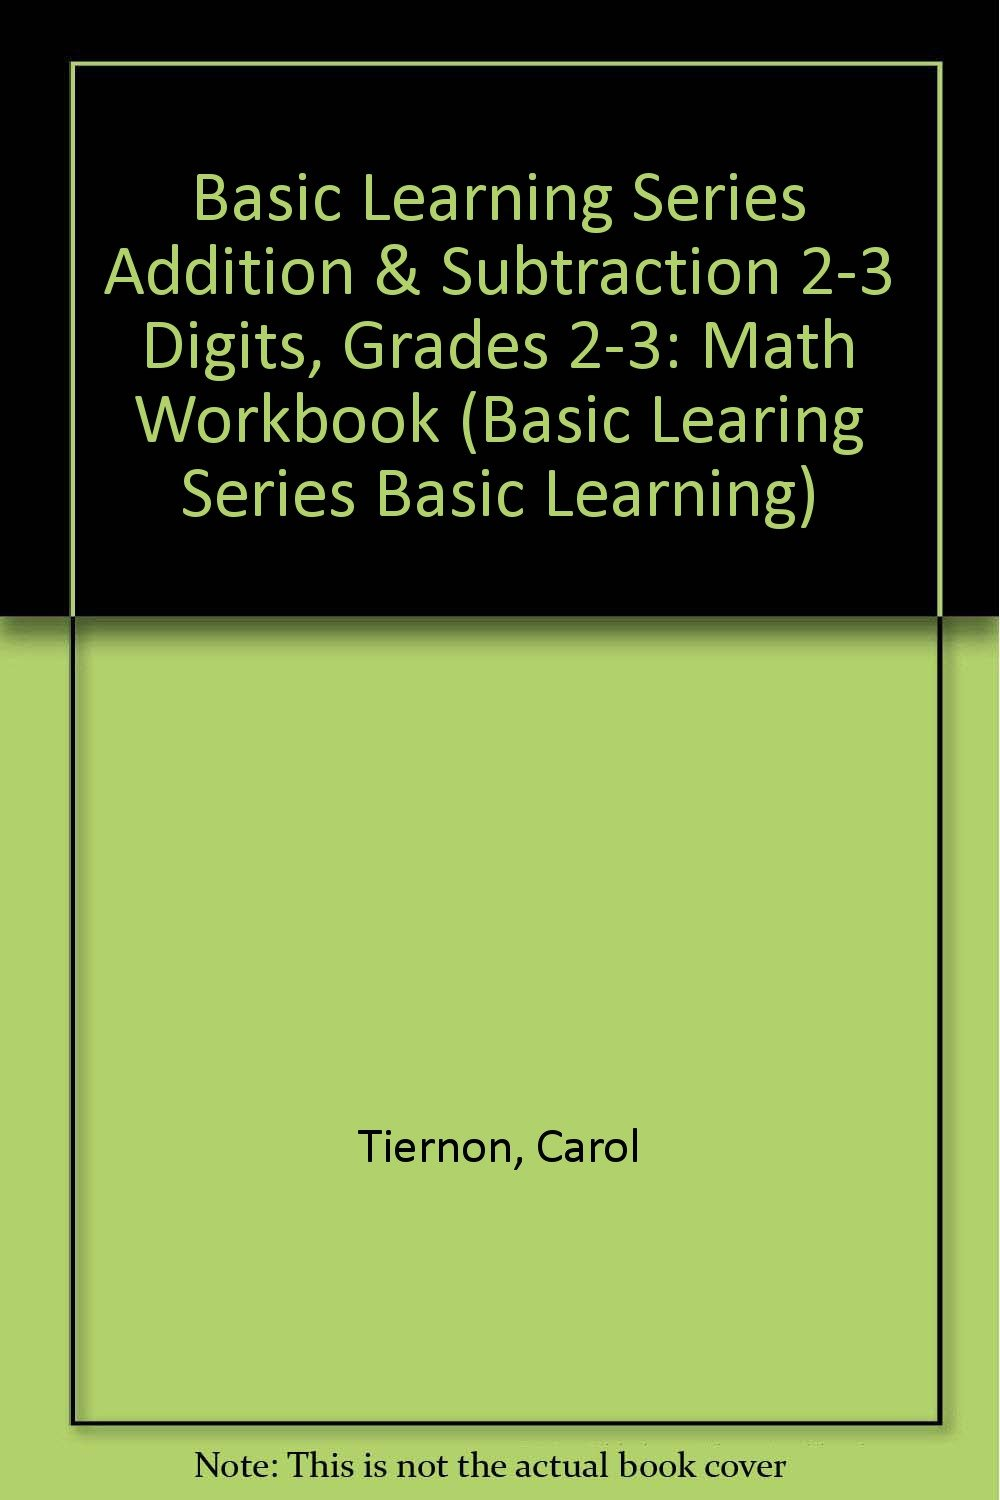 Download Basic Learning Series Addition & Subtraction 2-3 Digits, Grades 2-3: Math Workbook (Basic Learing Series Basic Learning) pdf epub